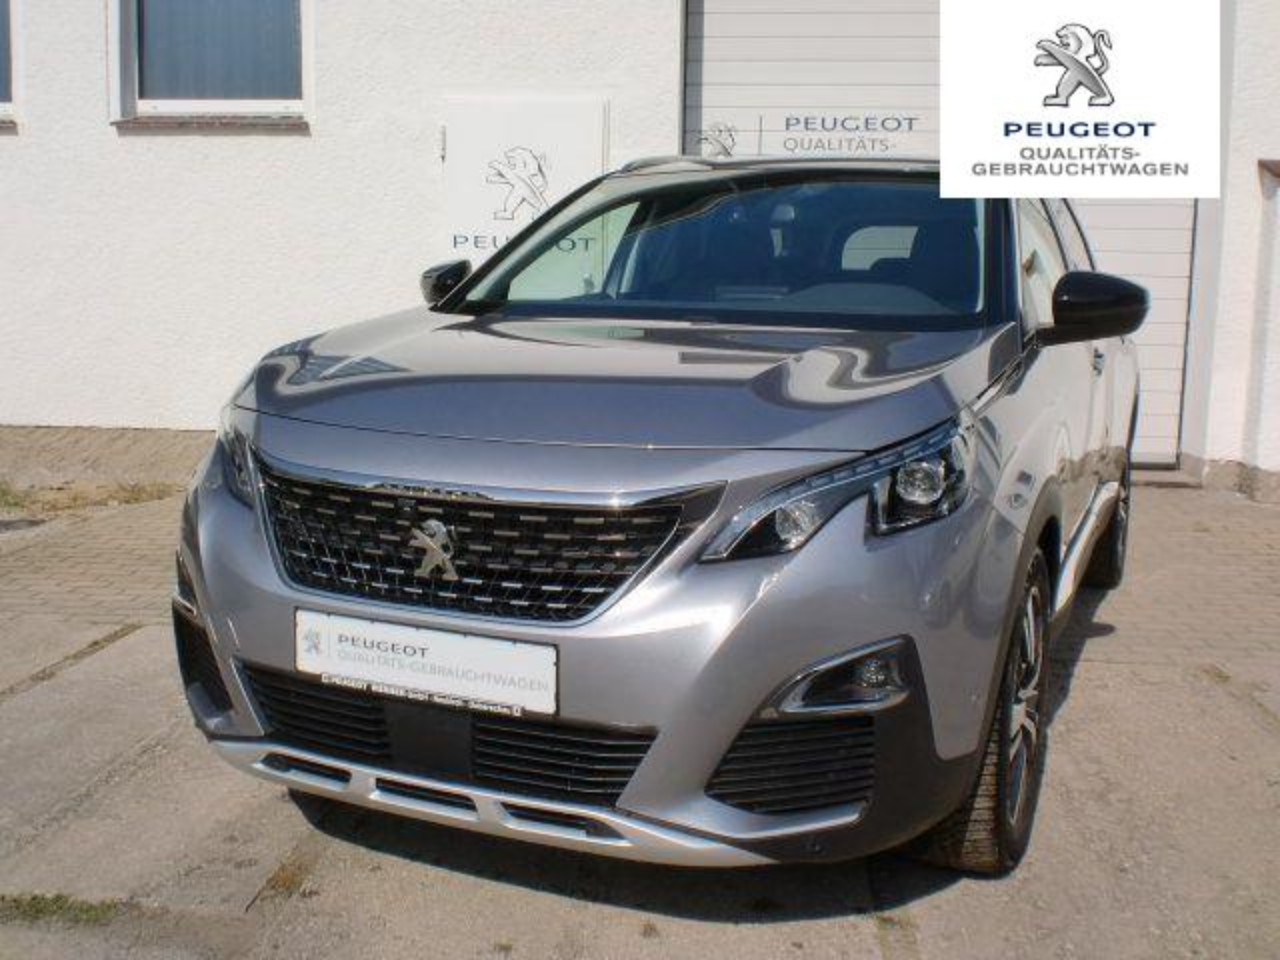 Peugeot 5008 BlueHDi 130 Allure m. Navi, Full-LED,EPH